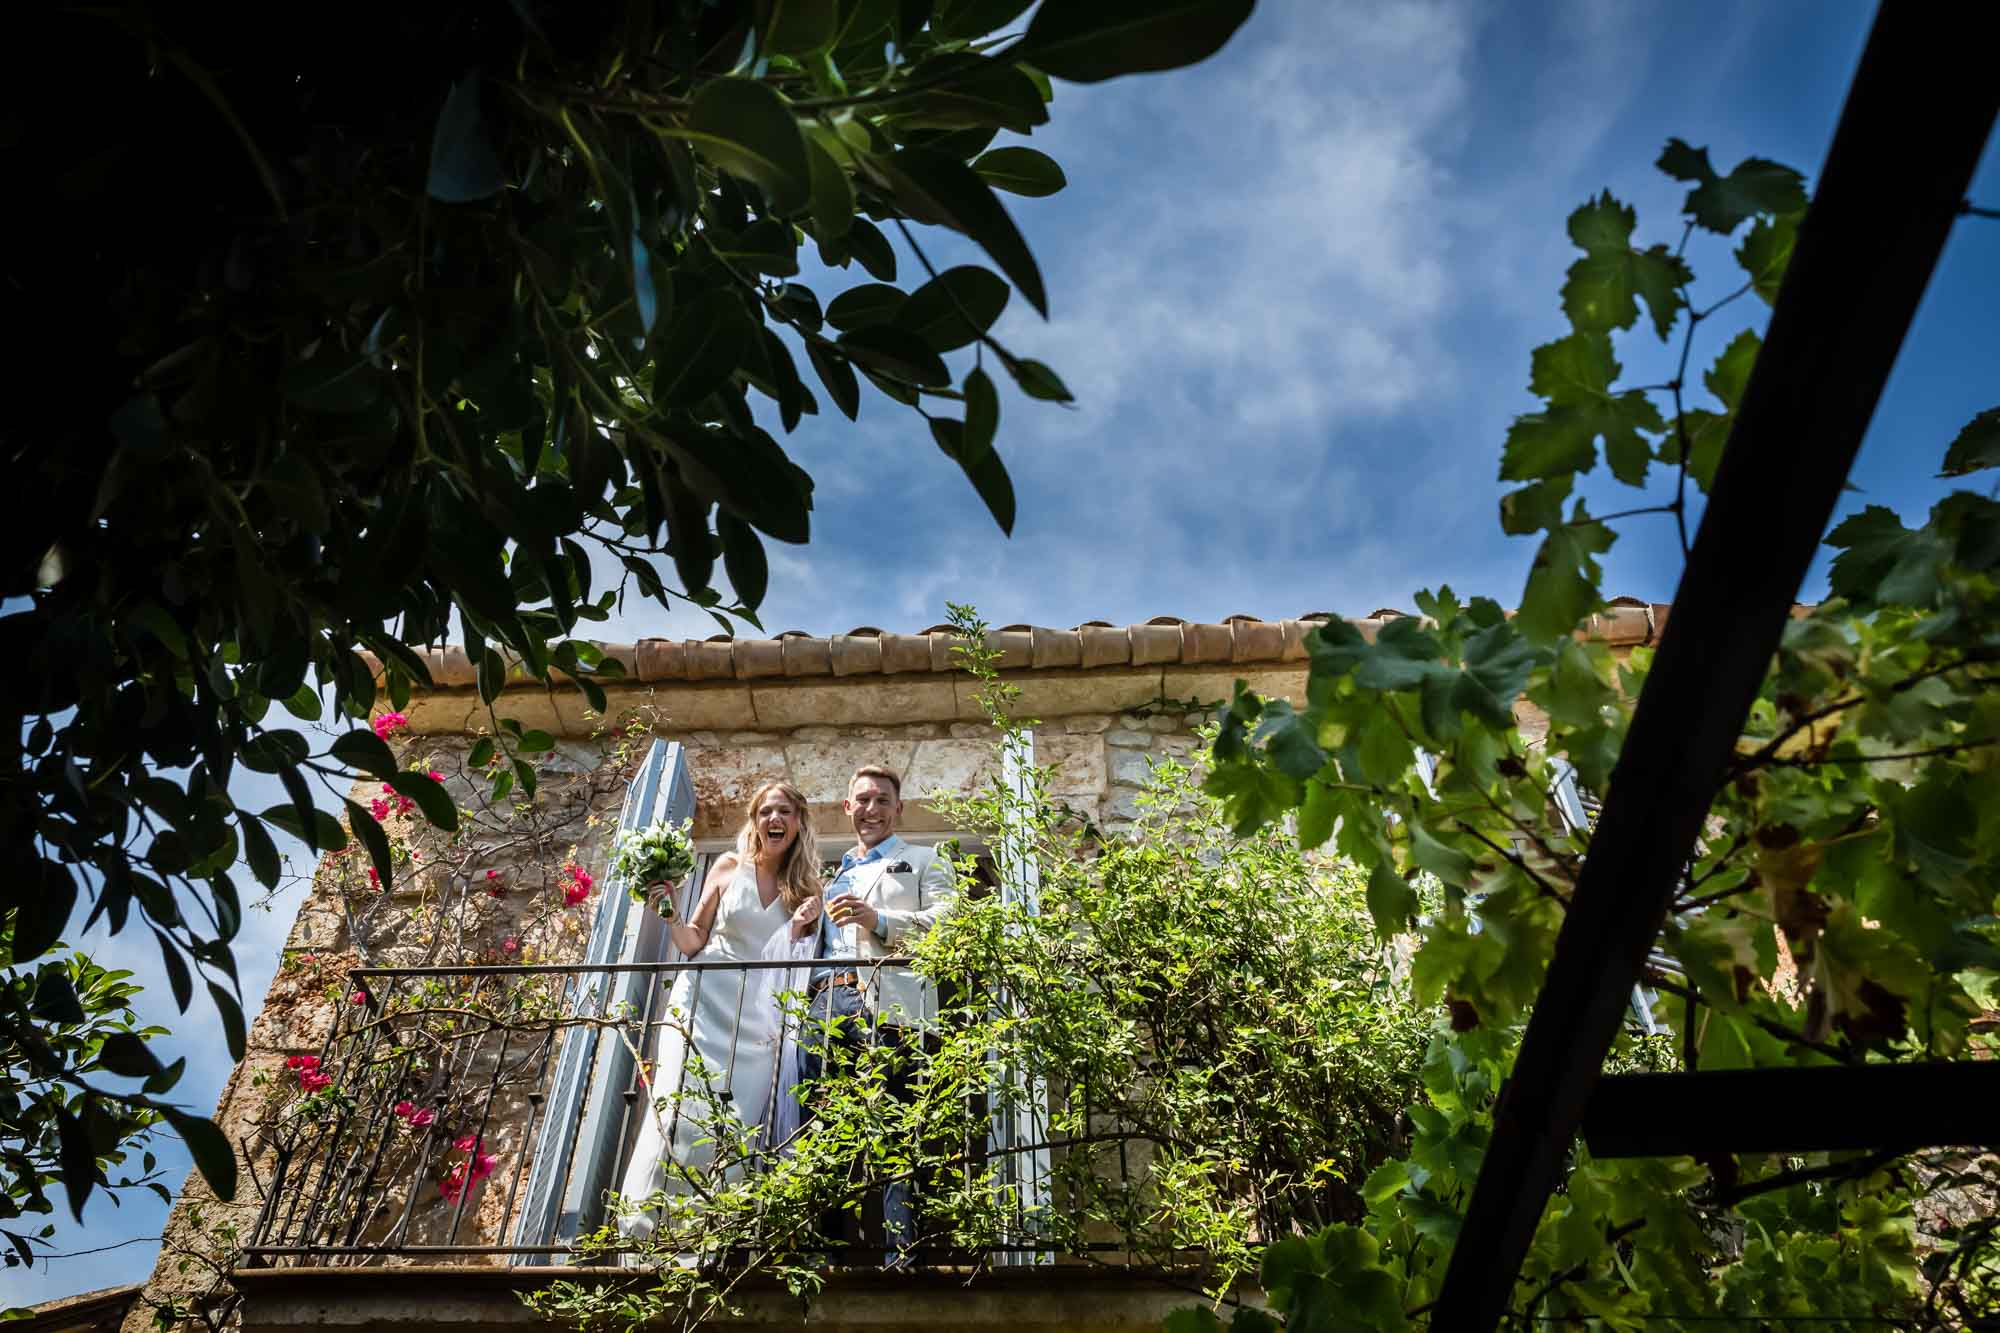 Cathy and Ben appear on the balcony of the Mallorca finca